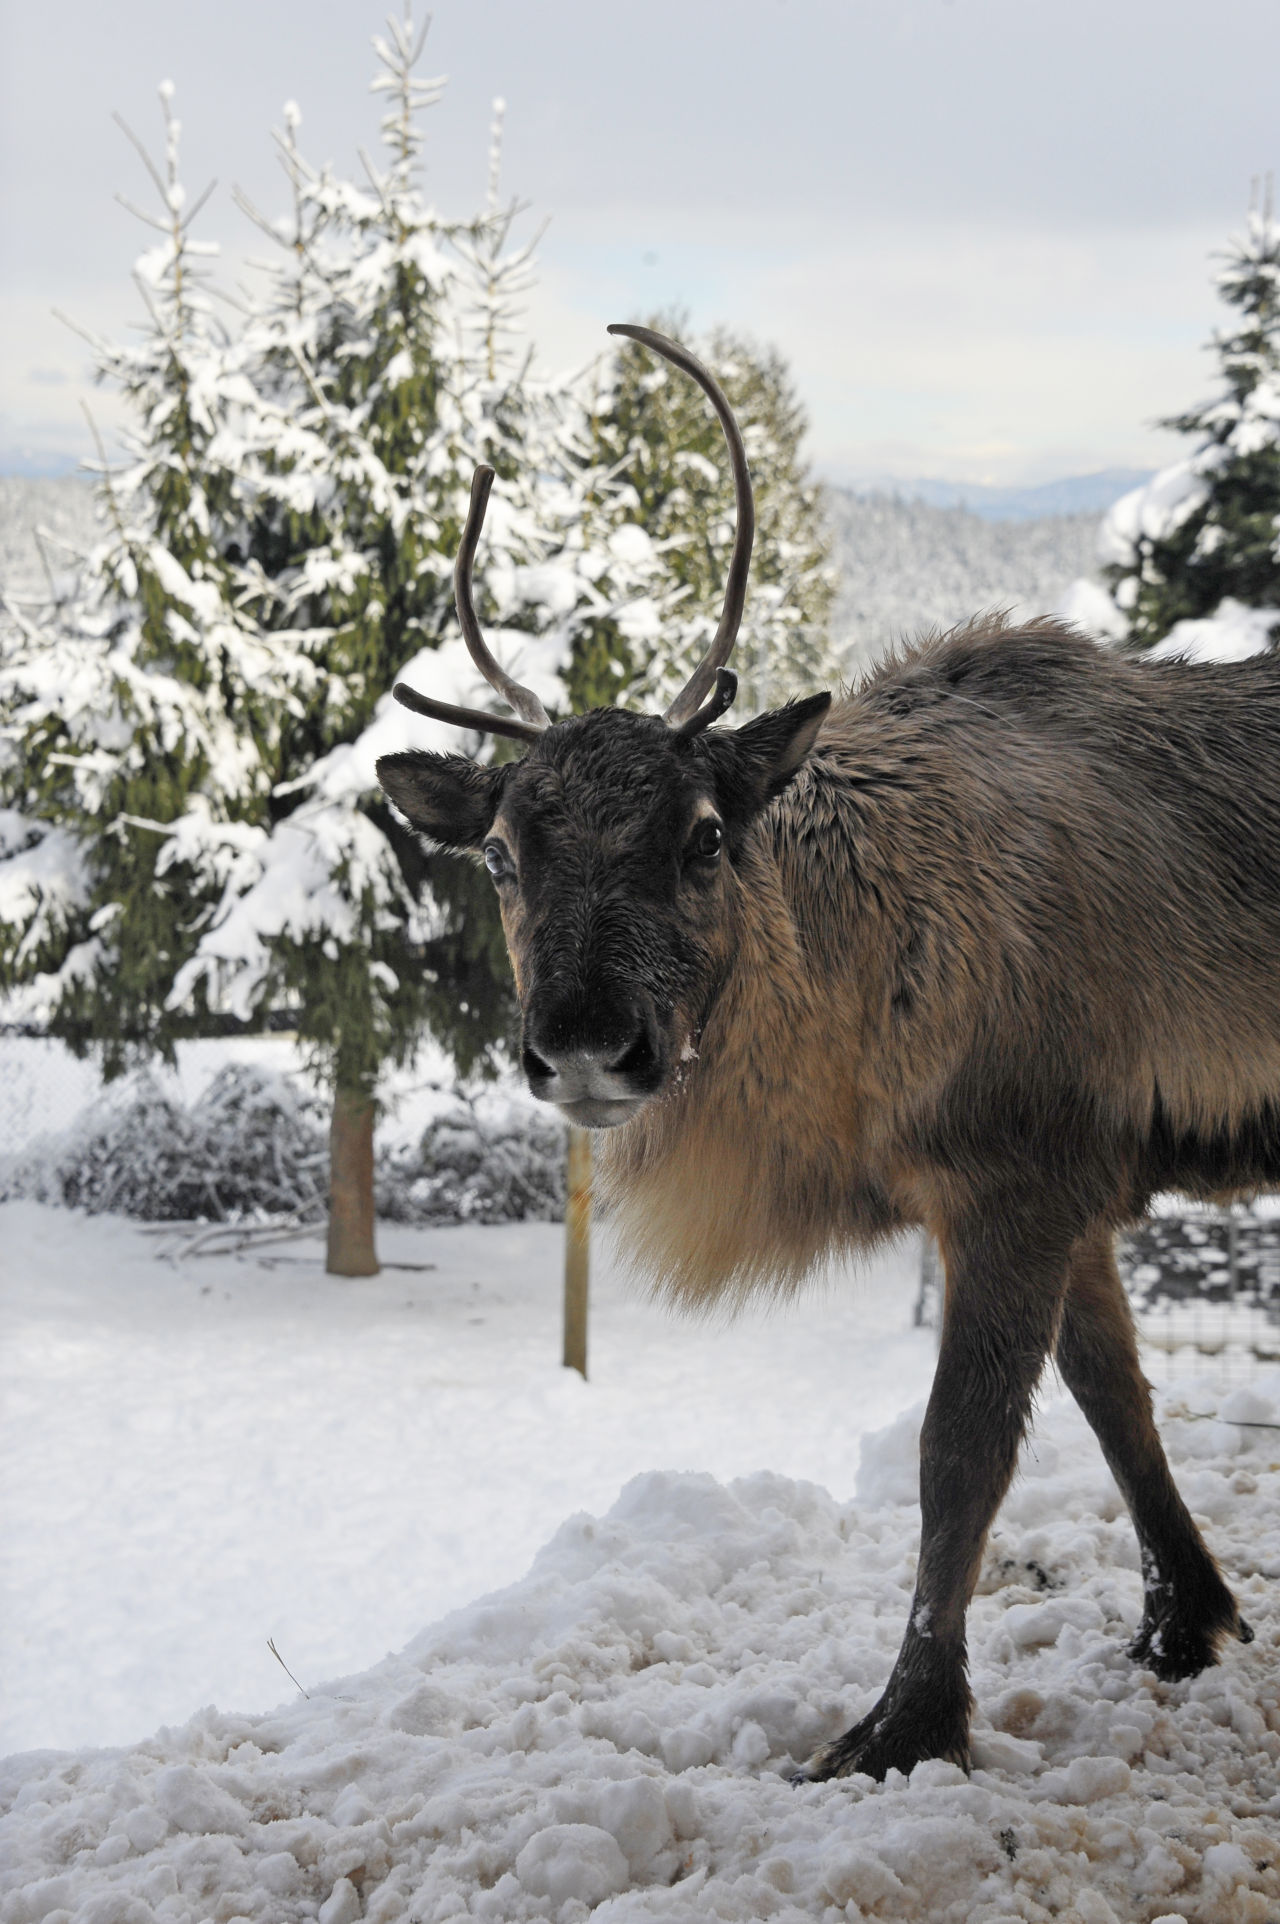 A furry male reindeer with antlers standing in the snow and looking to the right into the camera